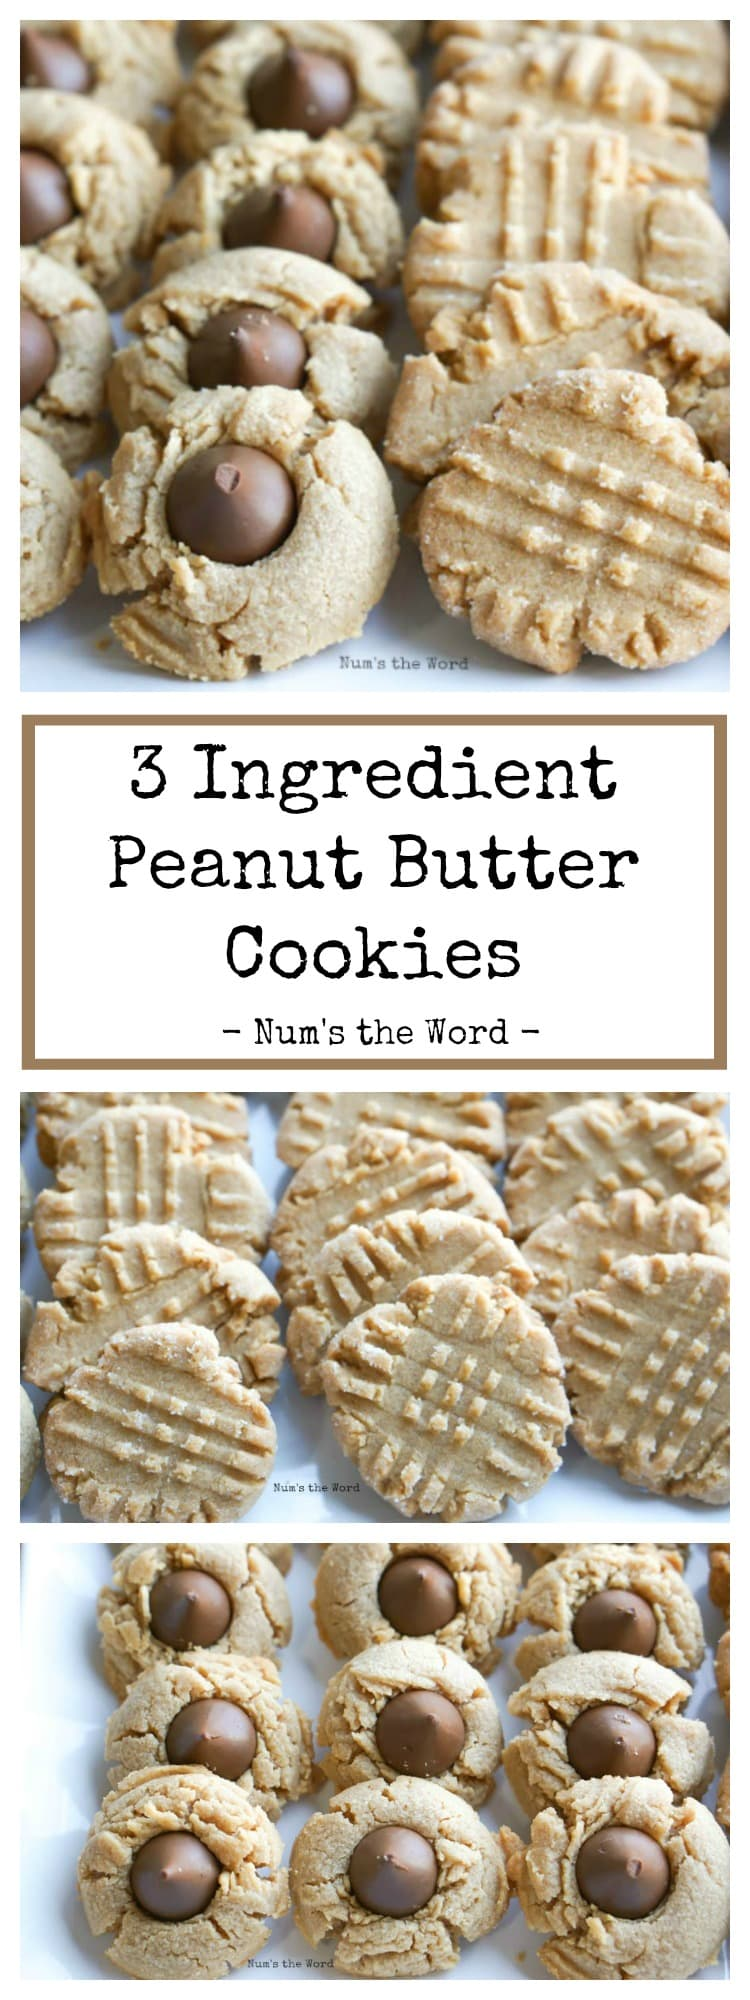 3-Ingredient Peanut Butter Cookie Recipe {Two Ways} - Num's the Word